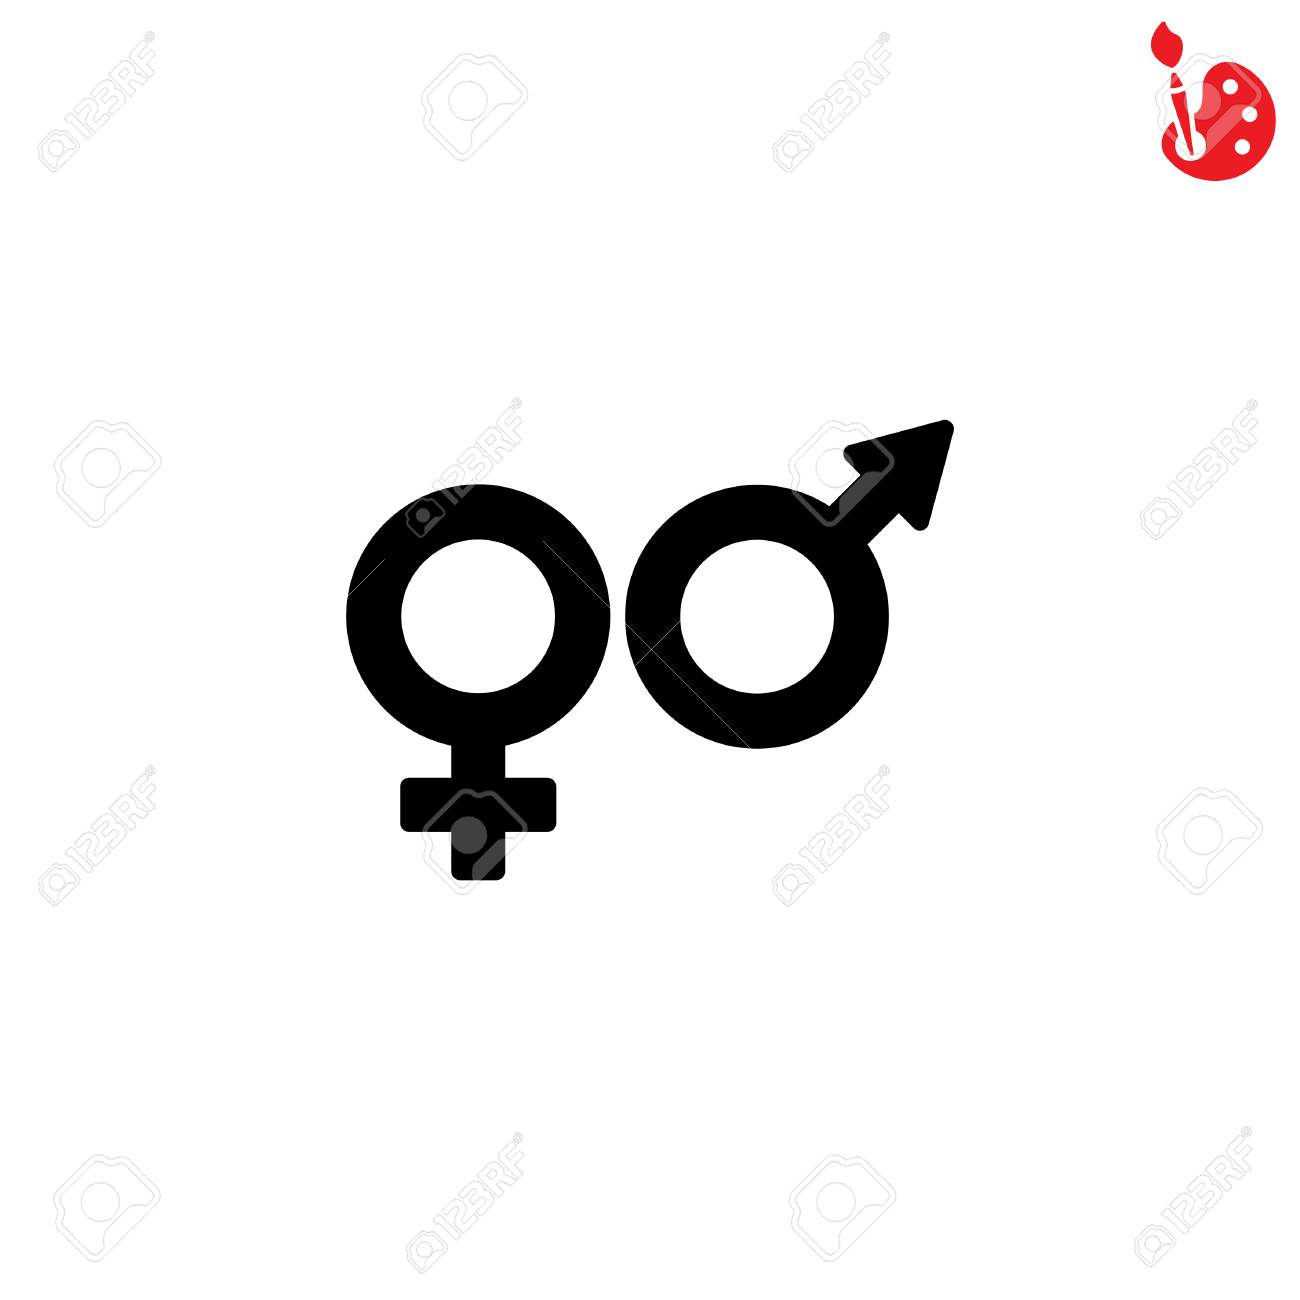 Web Line Icon Gender Symbol Symbols Of Men And Women Royalty Free